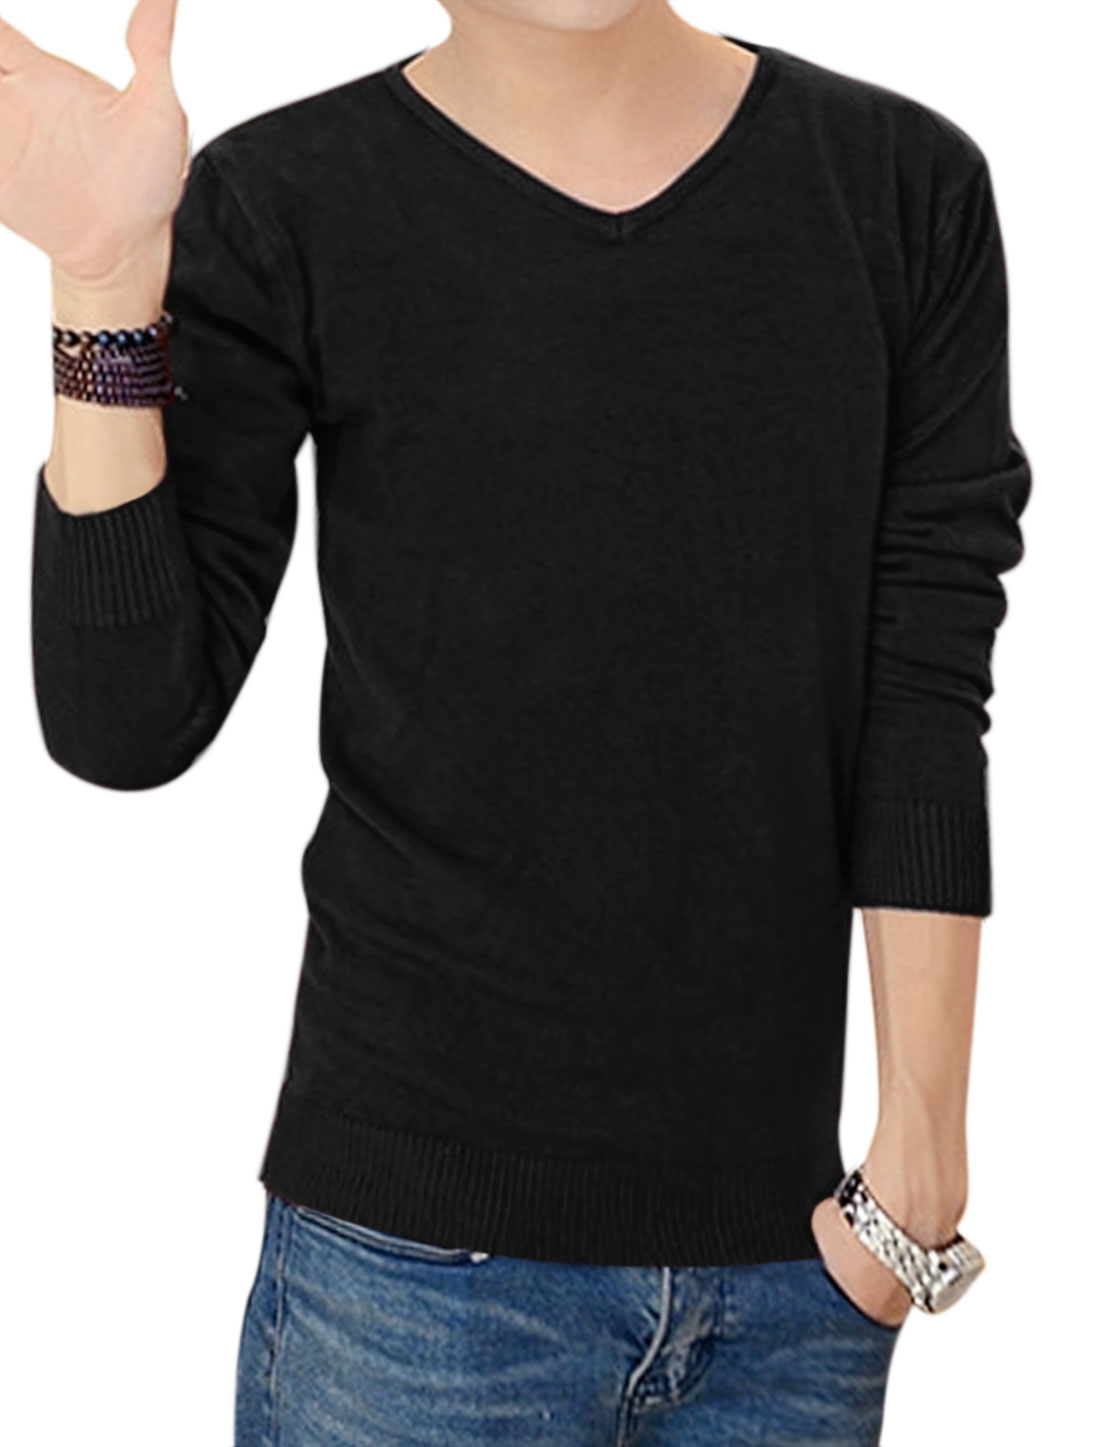 Men V Neckline Pullover Long Sleeves Slim Fit Knit Shirt Black M